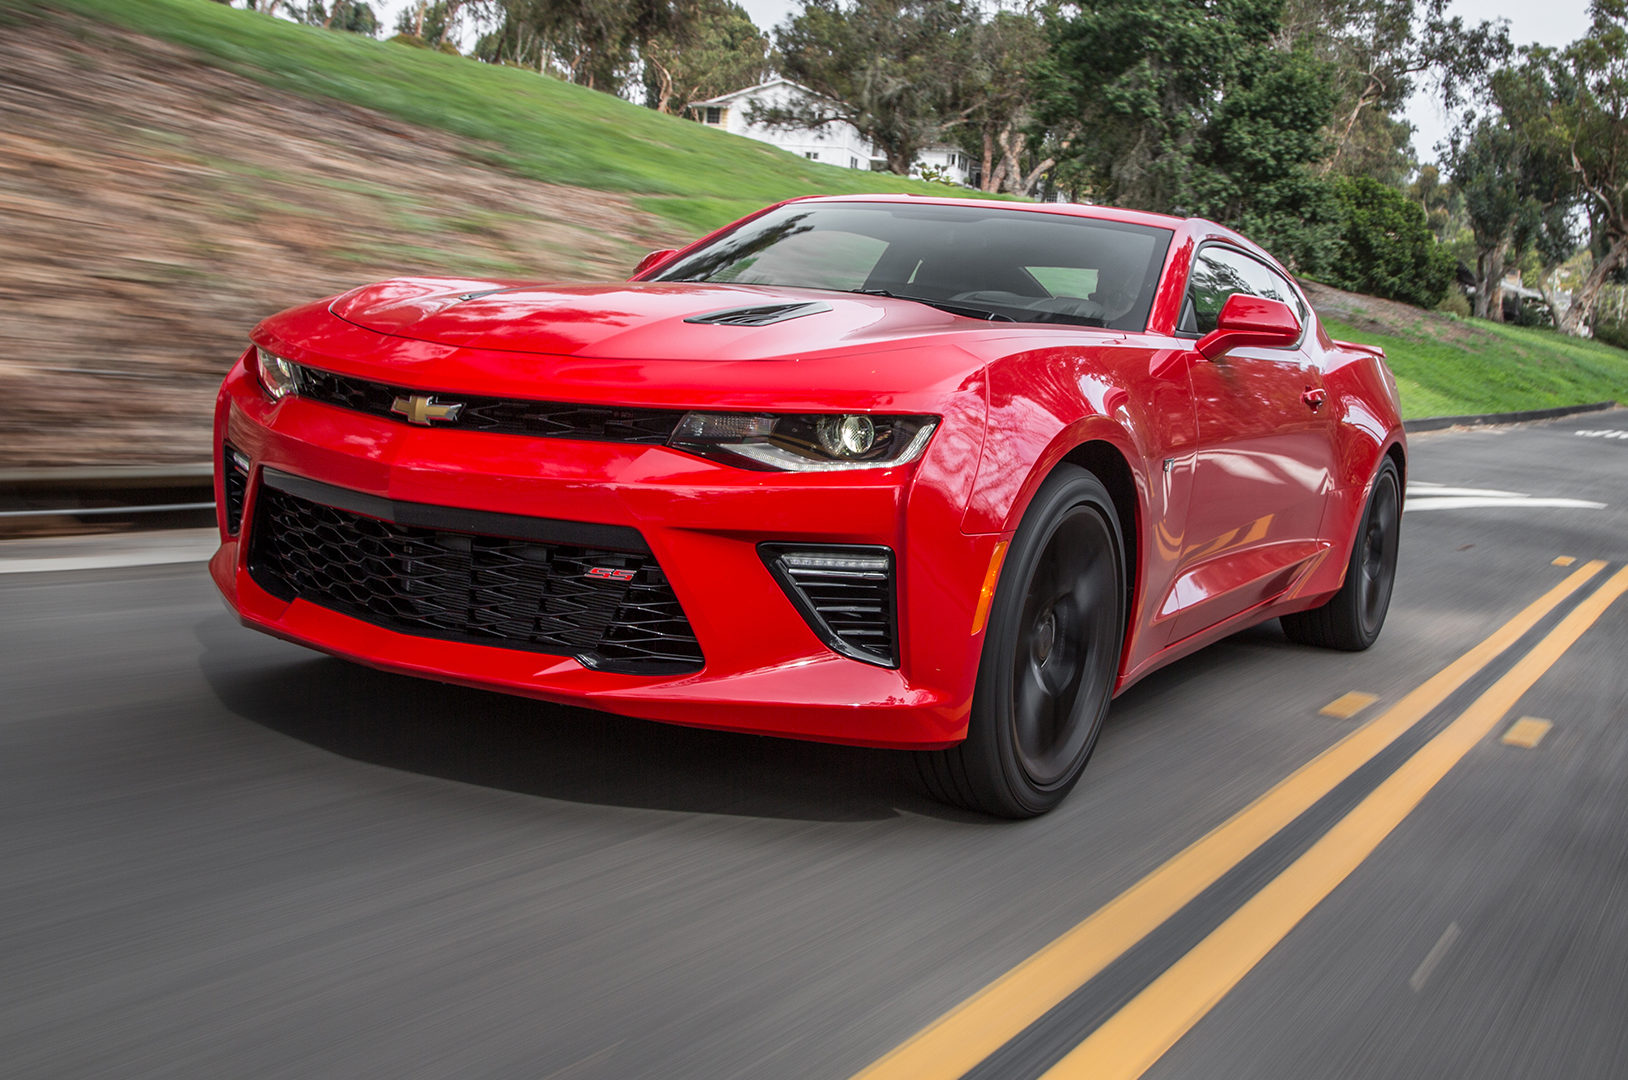 2016-chevrolet-camaro-ss-front-three-quarter-in-motion-e1499463315575